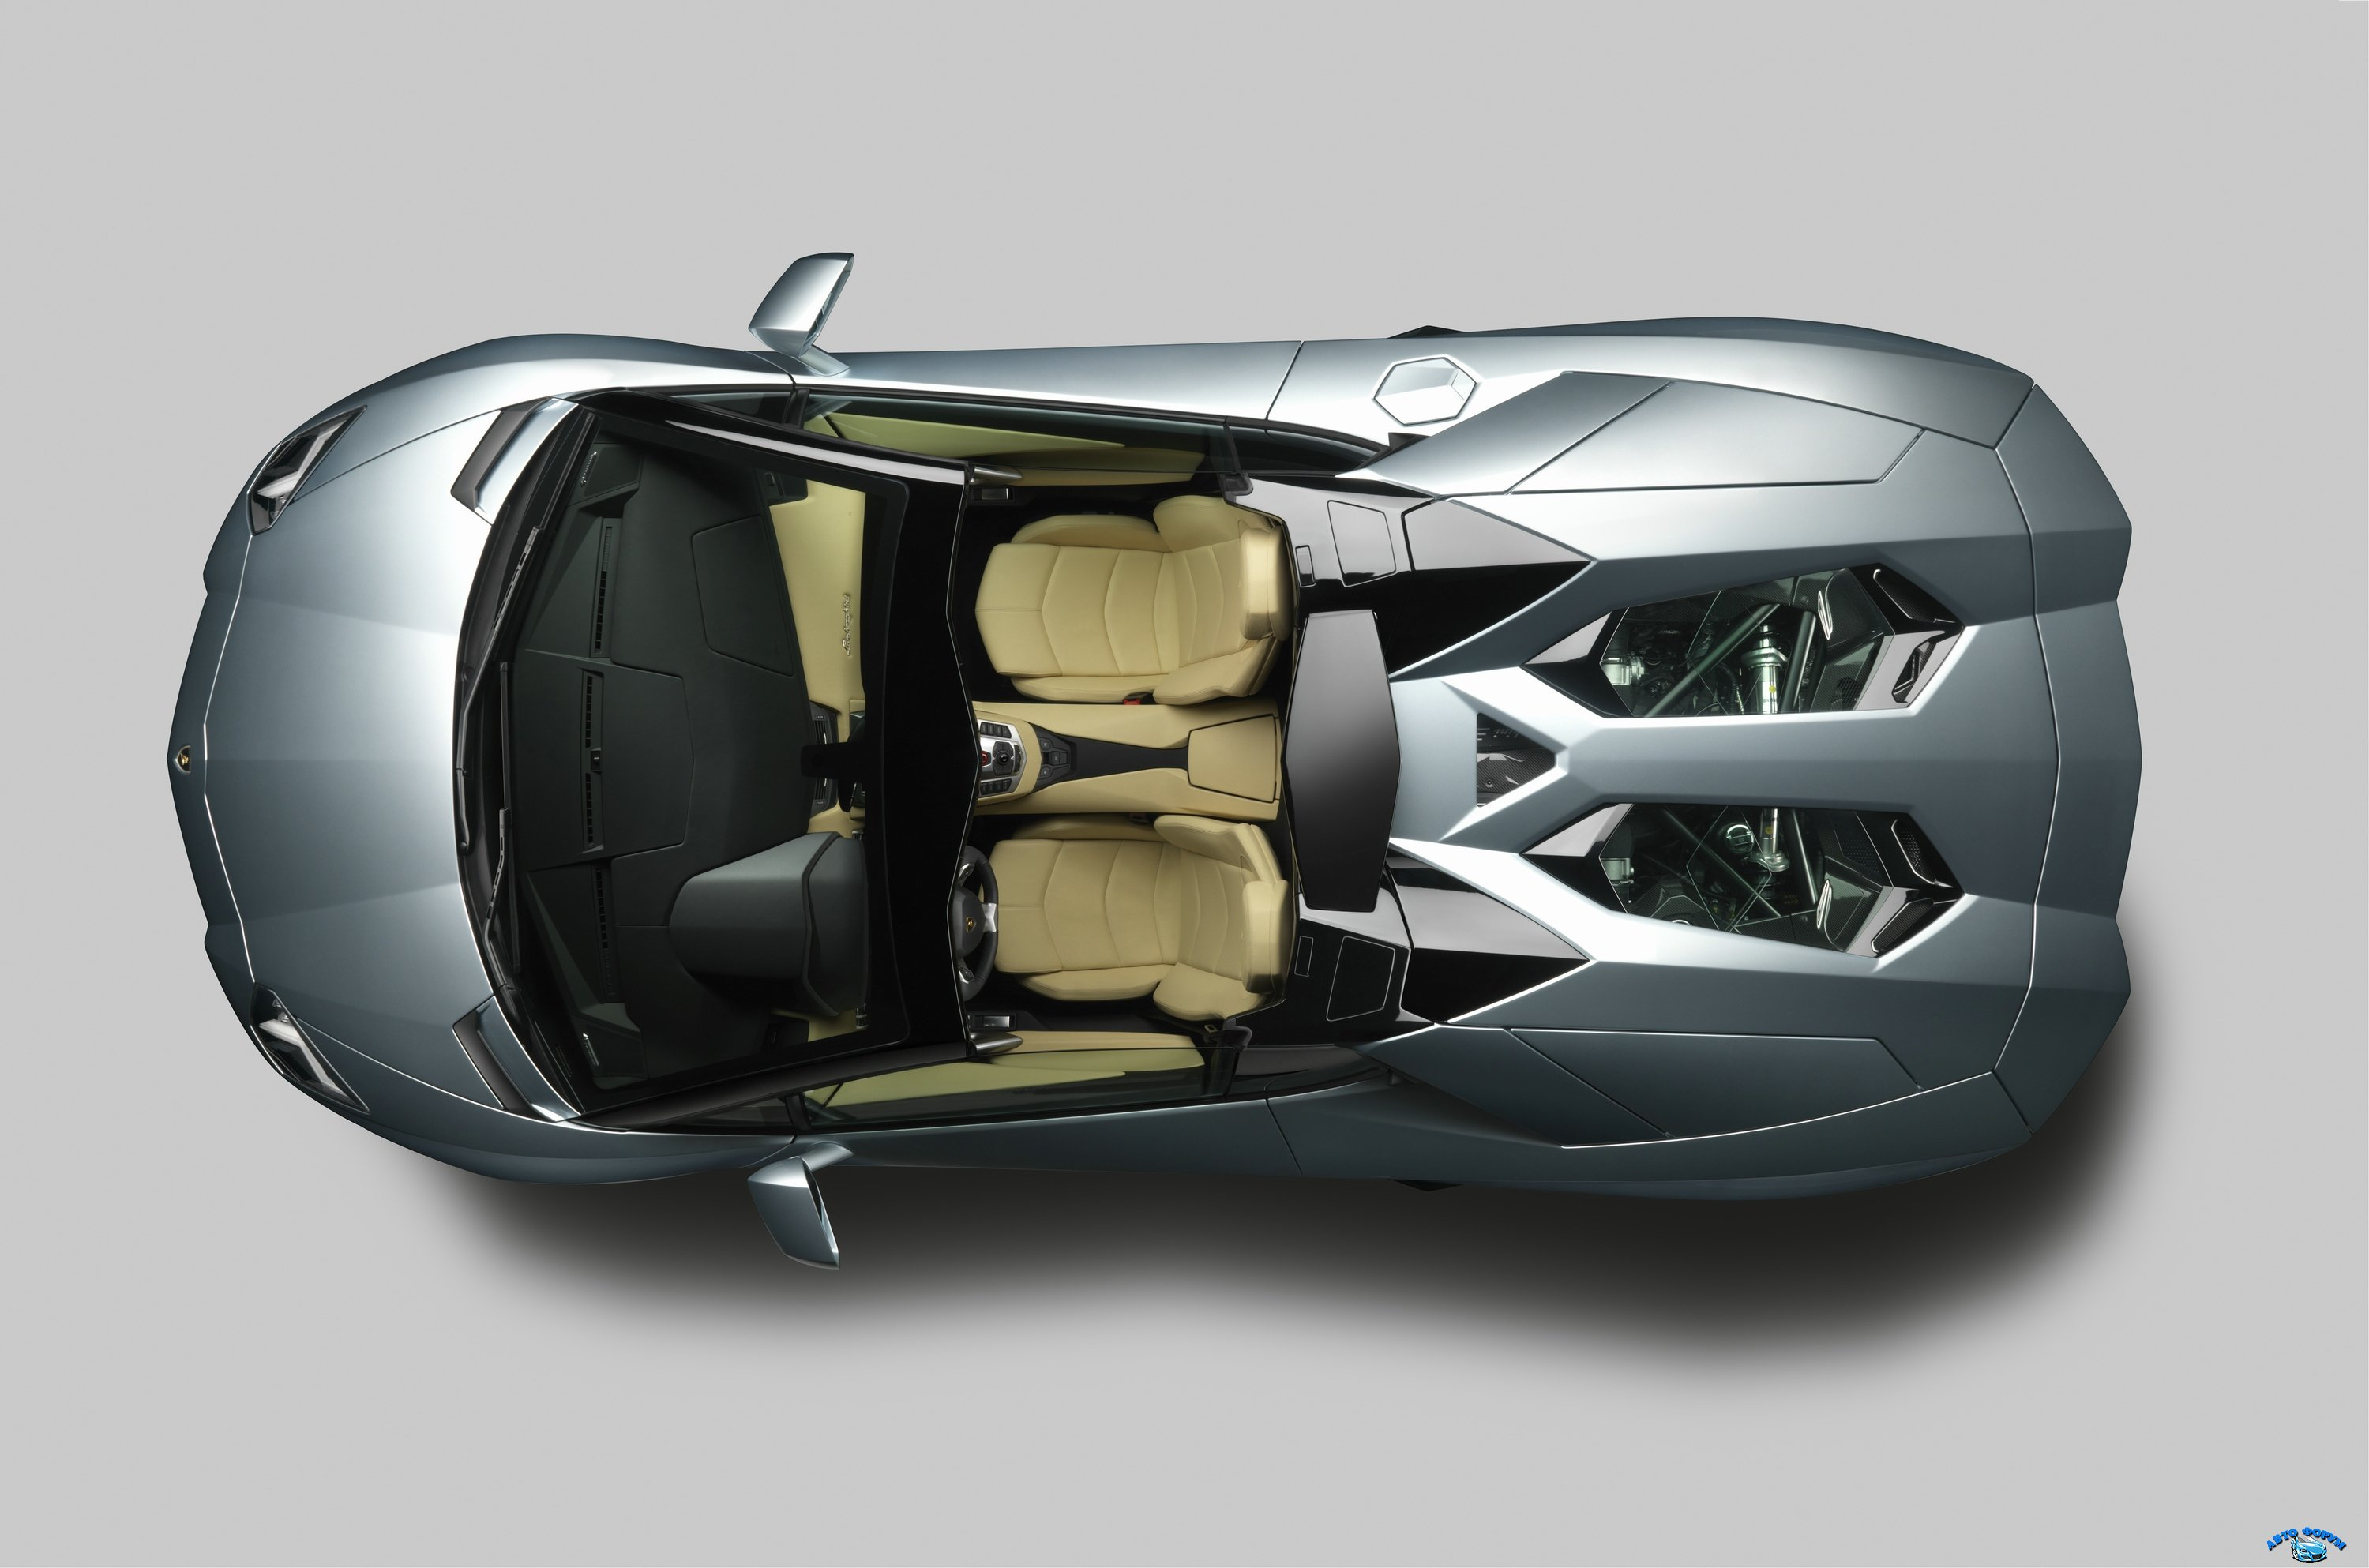 lamborghini_aventador_lp_700-4_roadster_without_roof_top_view_18.jpg